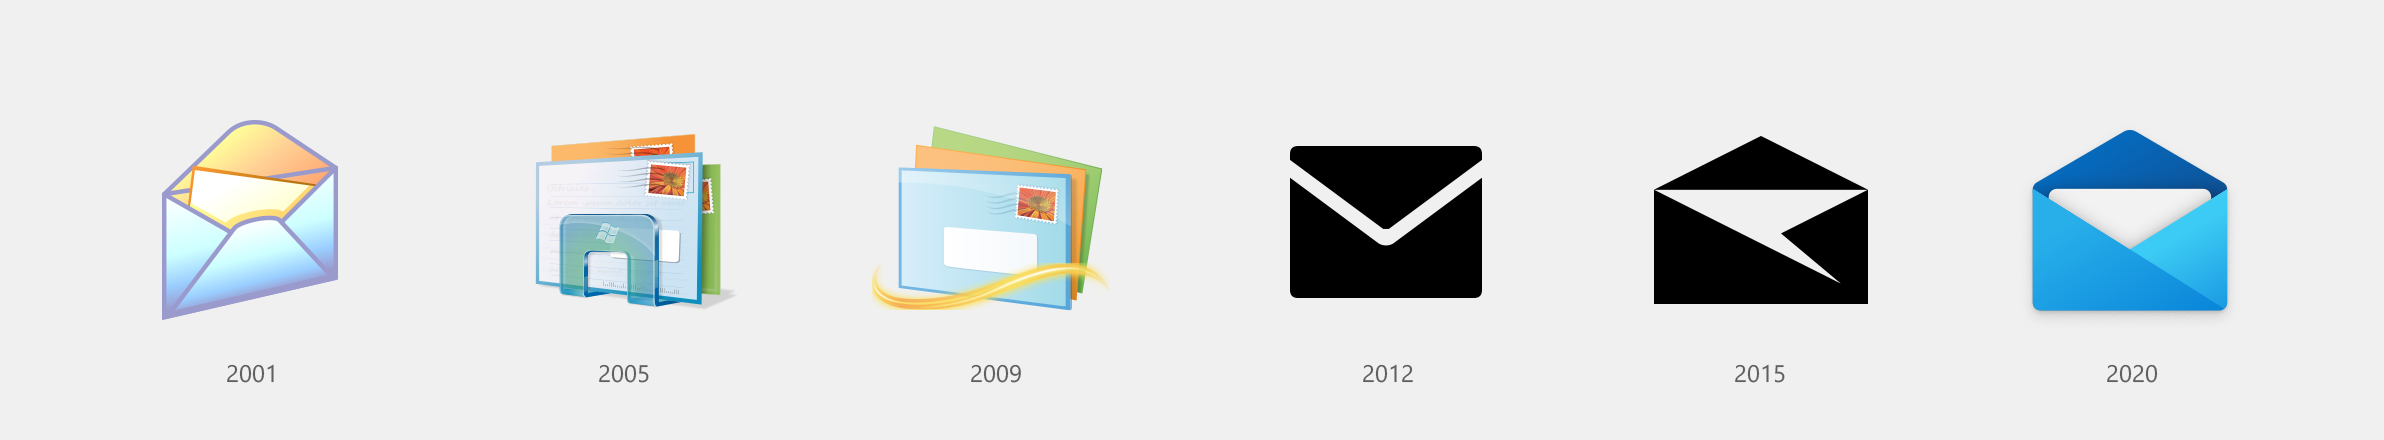 6 Mail logos in chronological order